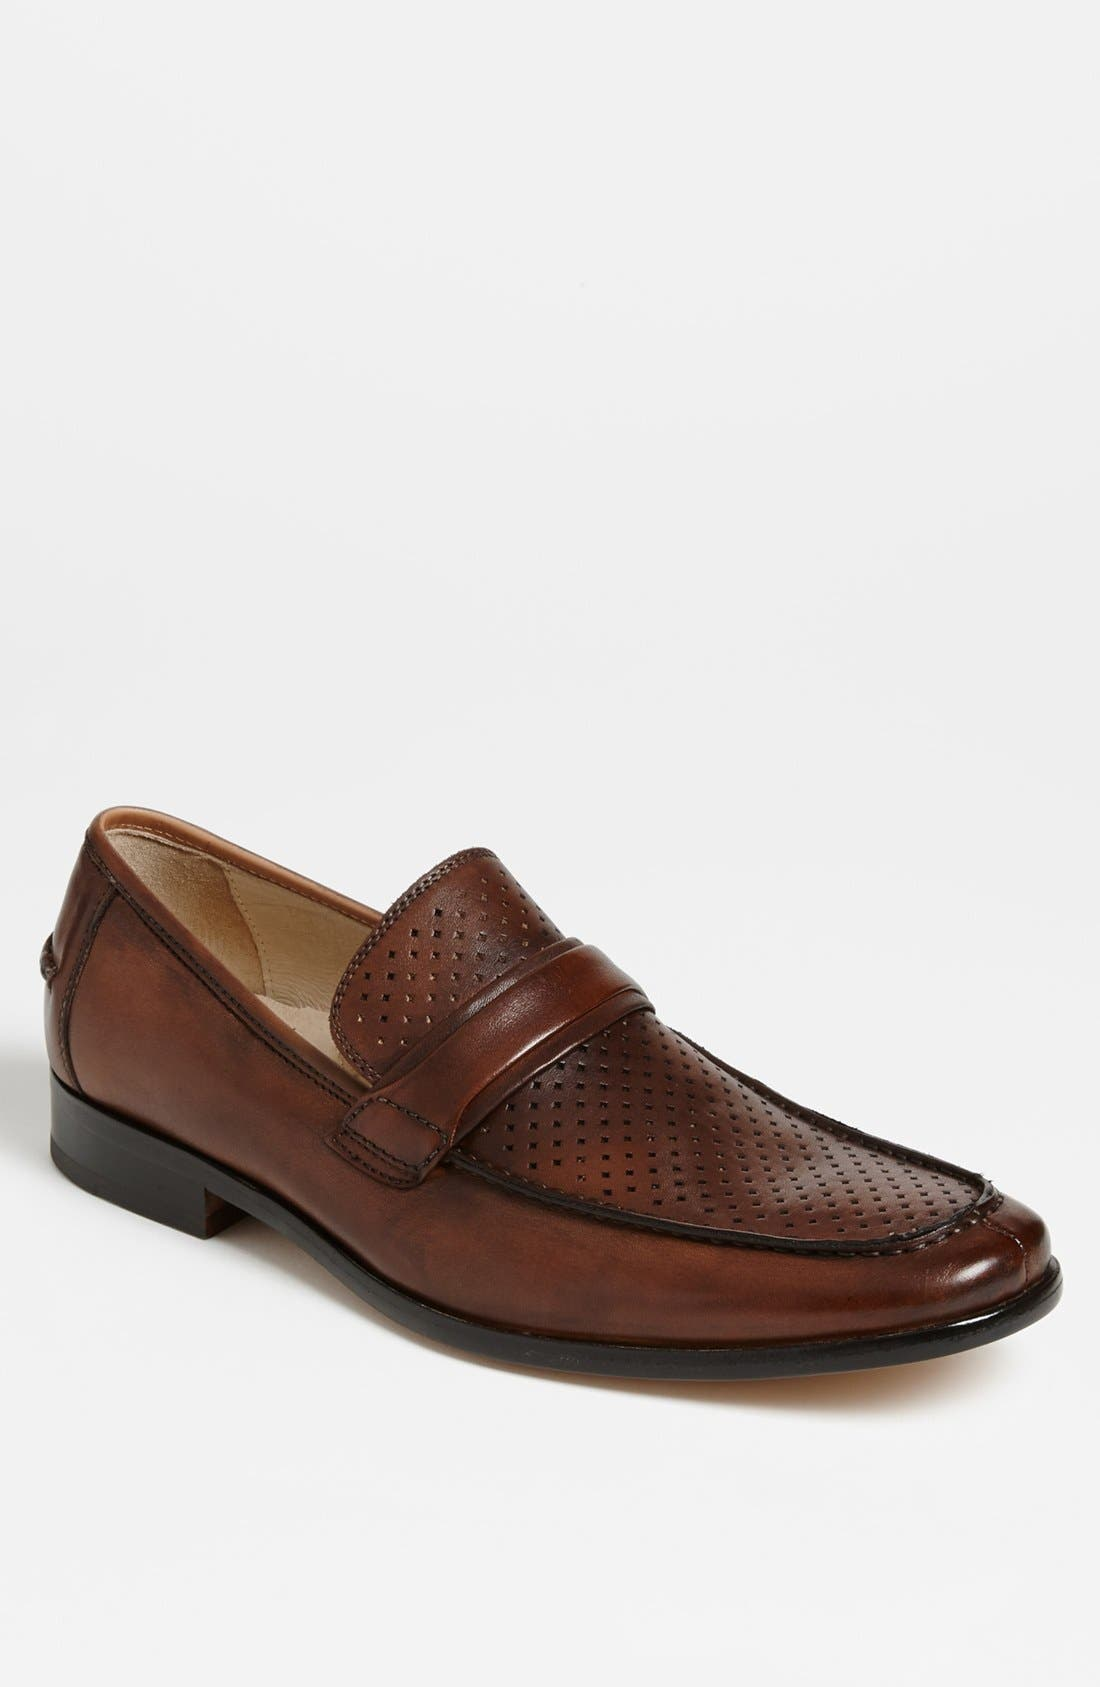 Main Image - Kenneth Cole New York 'Bigger Than Me' Loafer